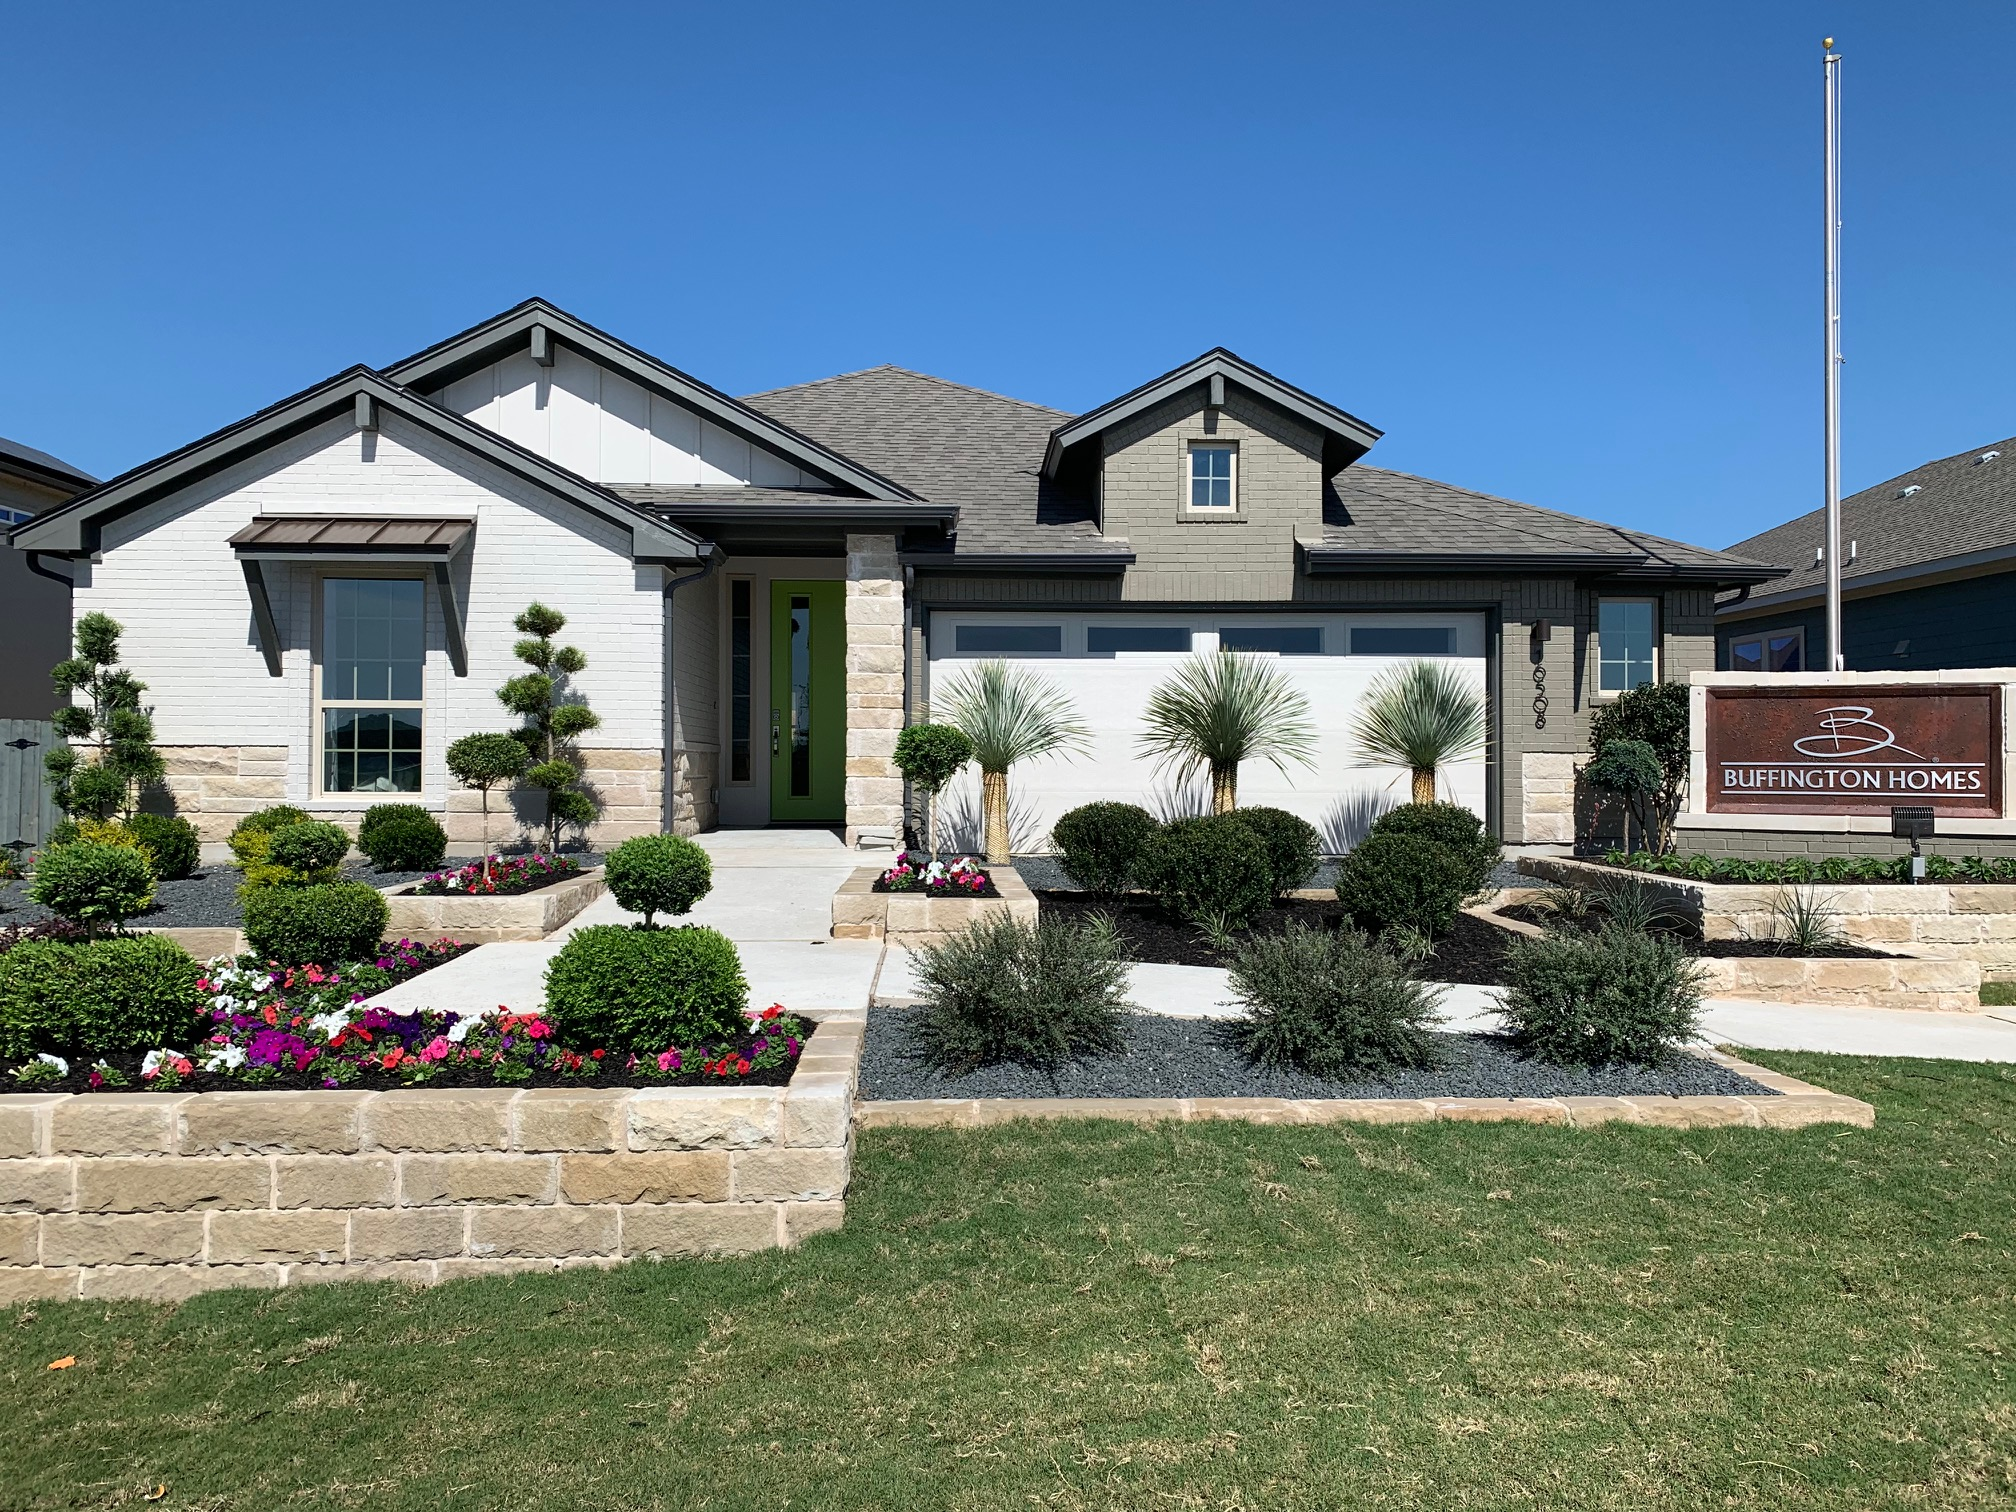 Buffington Homes in Whisper Valley